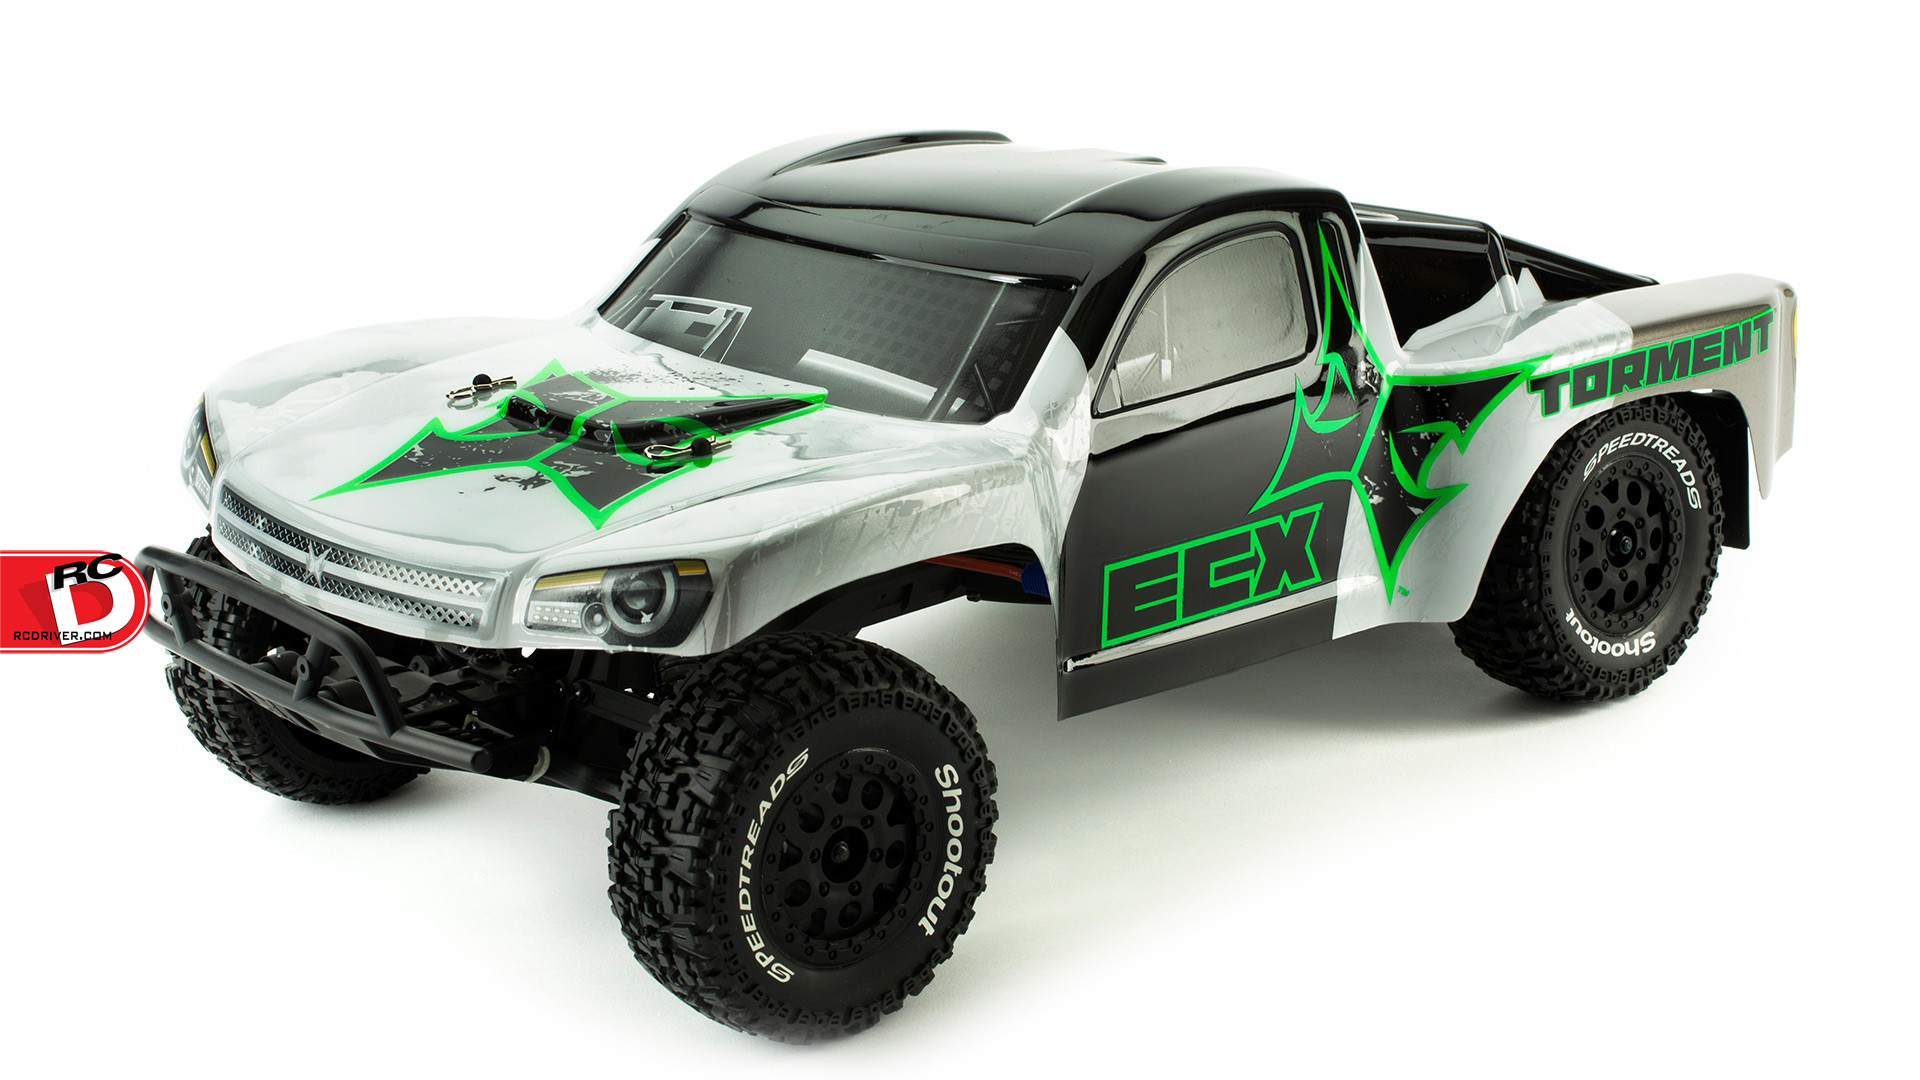 ECX 2WD Vehicles get the 2.1 Treatment